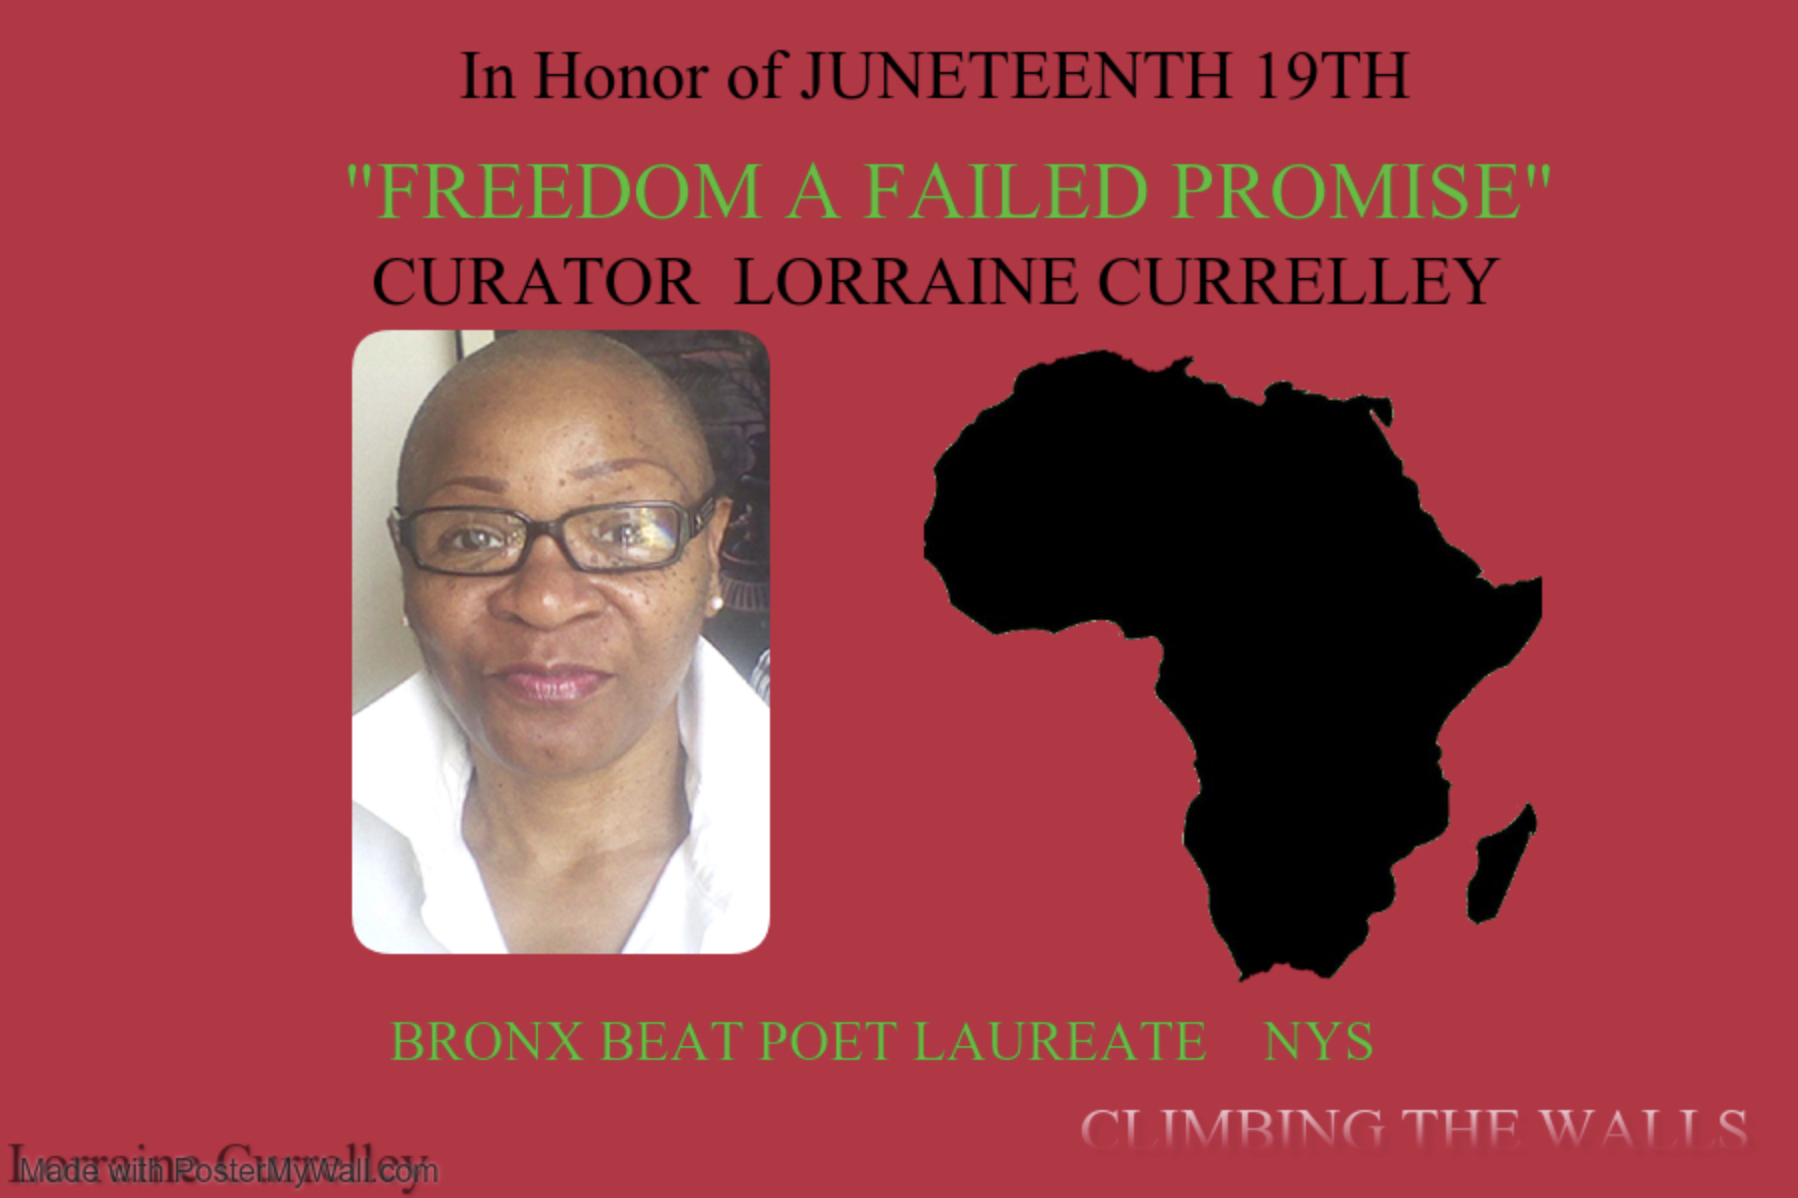 In honor of Juneteenth, Lorraine Currelley